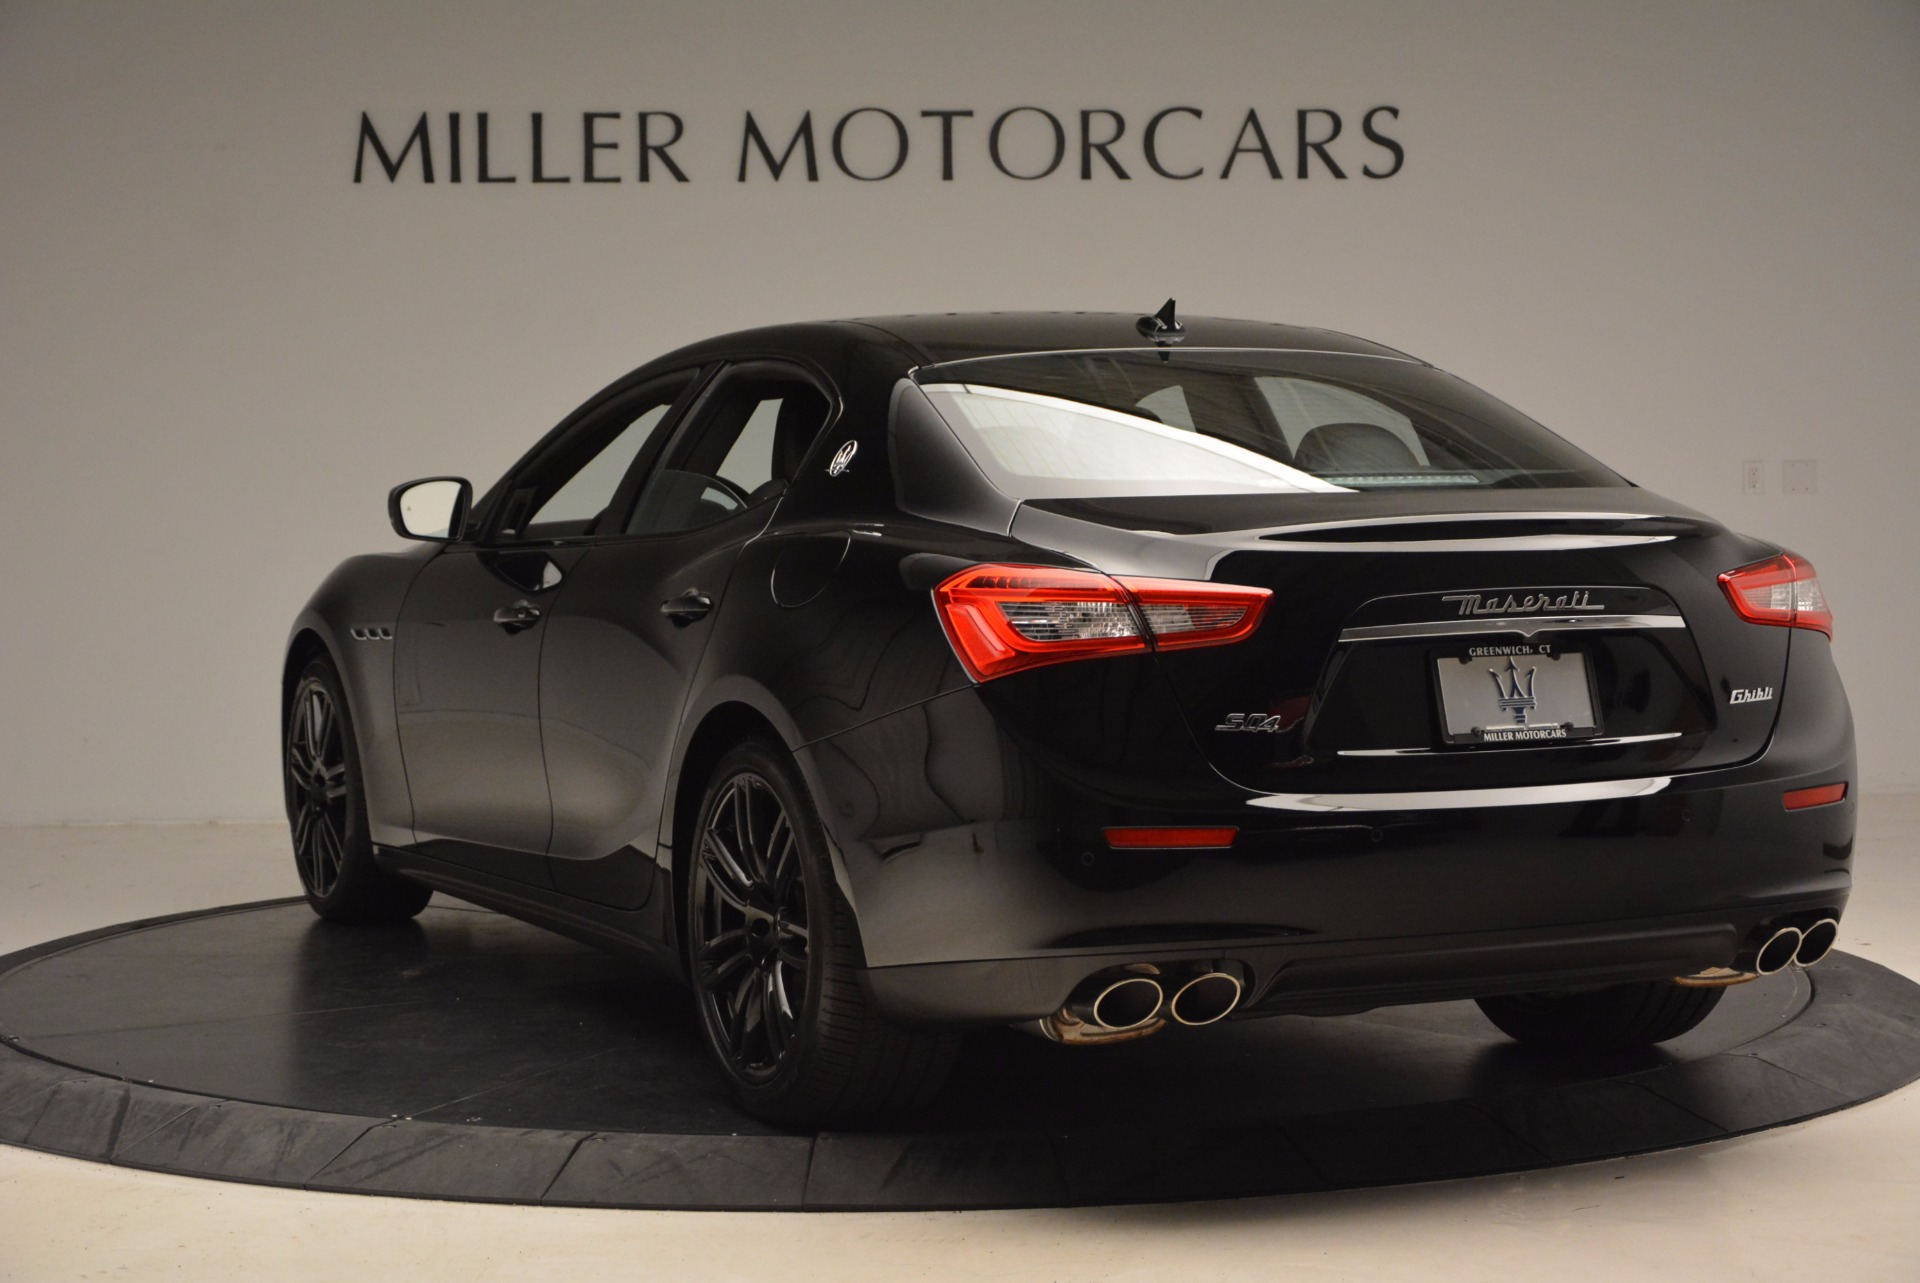 New 2017 Maserati Ghibli Nerissimo Edition S Q4 For Sale In Westport, CT 1420_p5